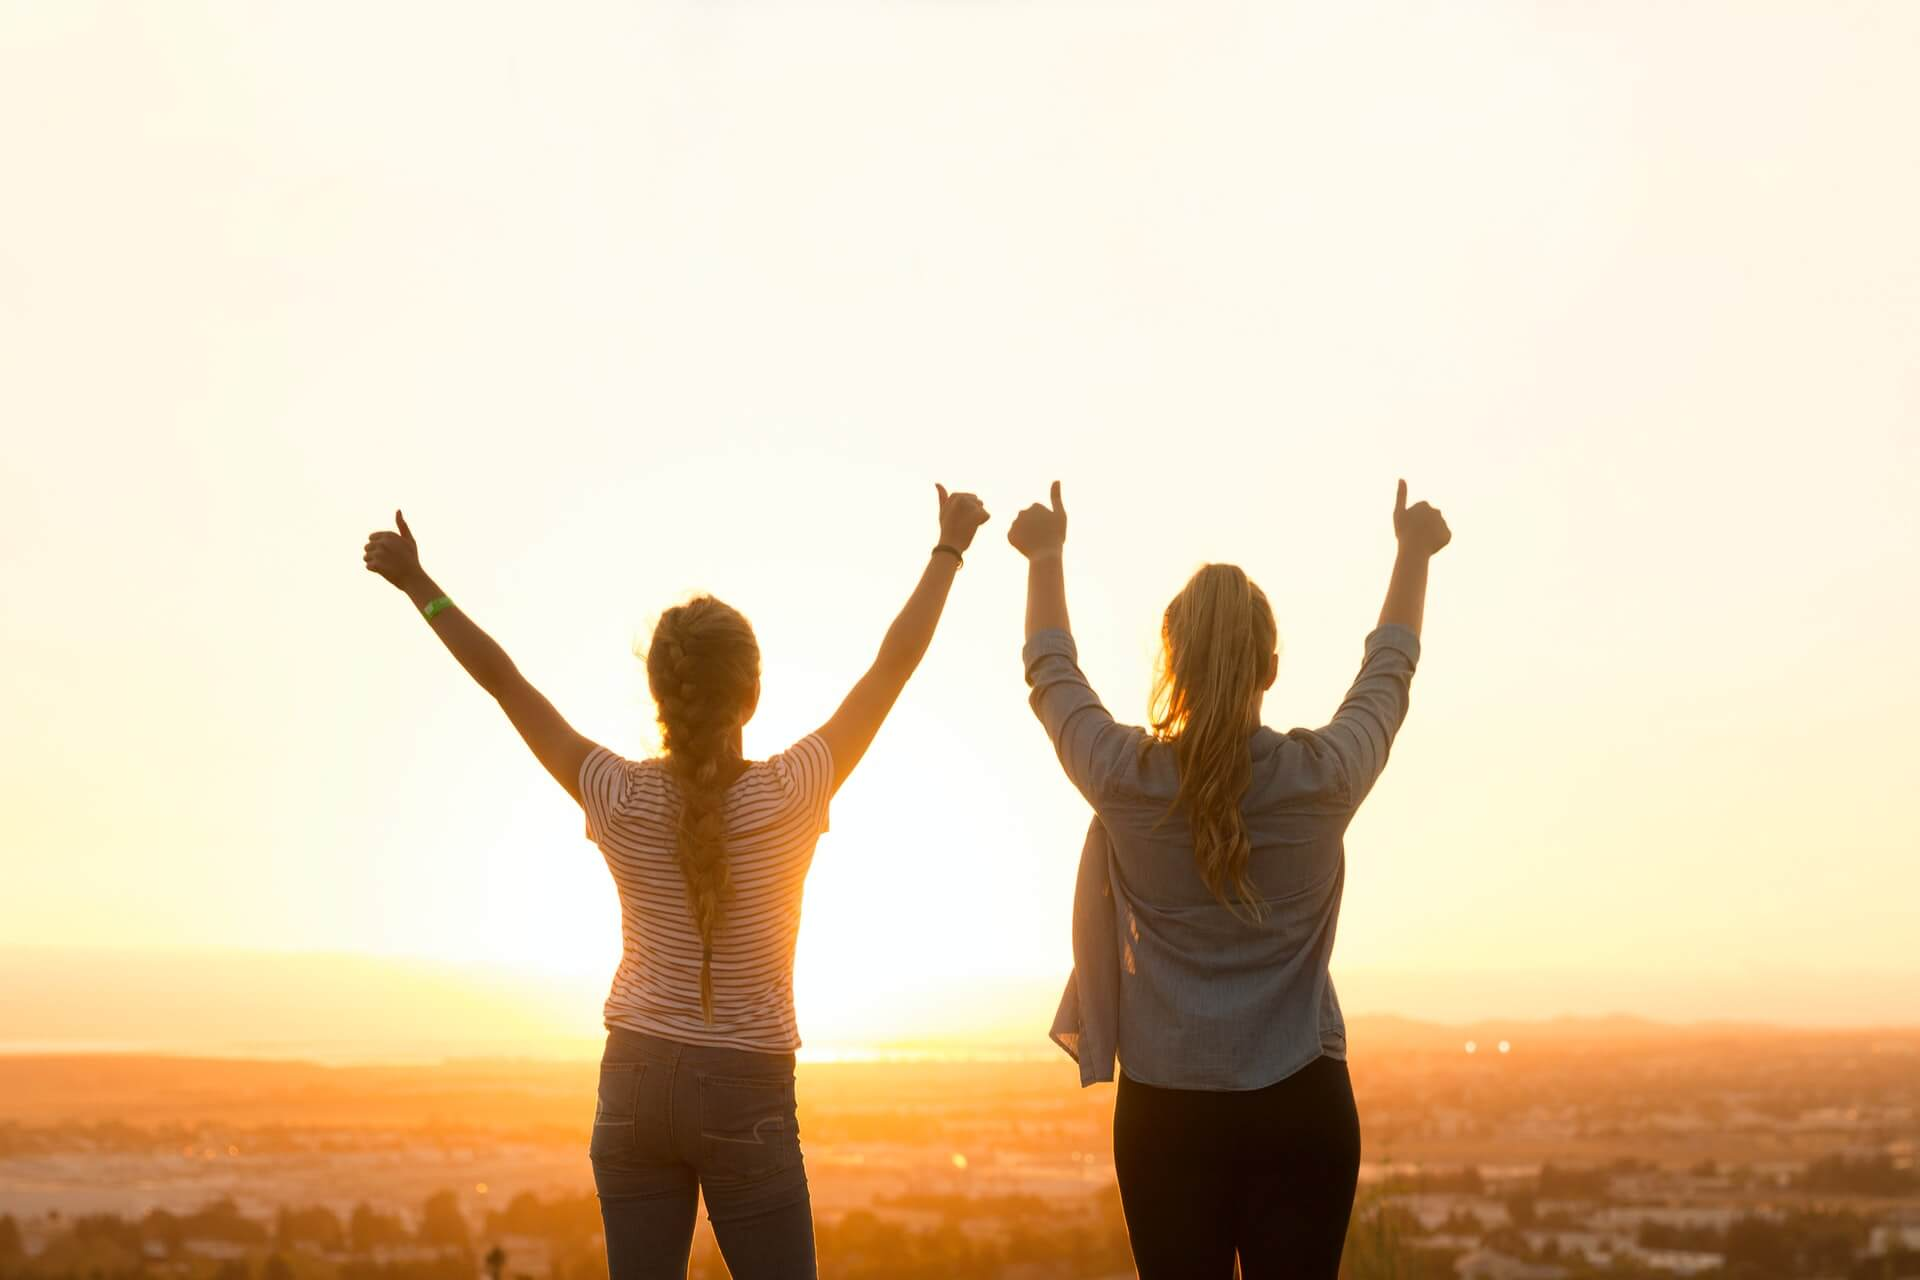 Two women hold their hands up in front of a sunset.